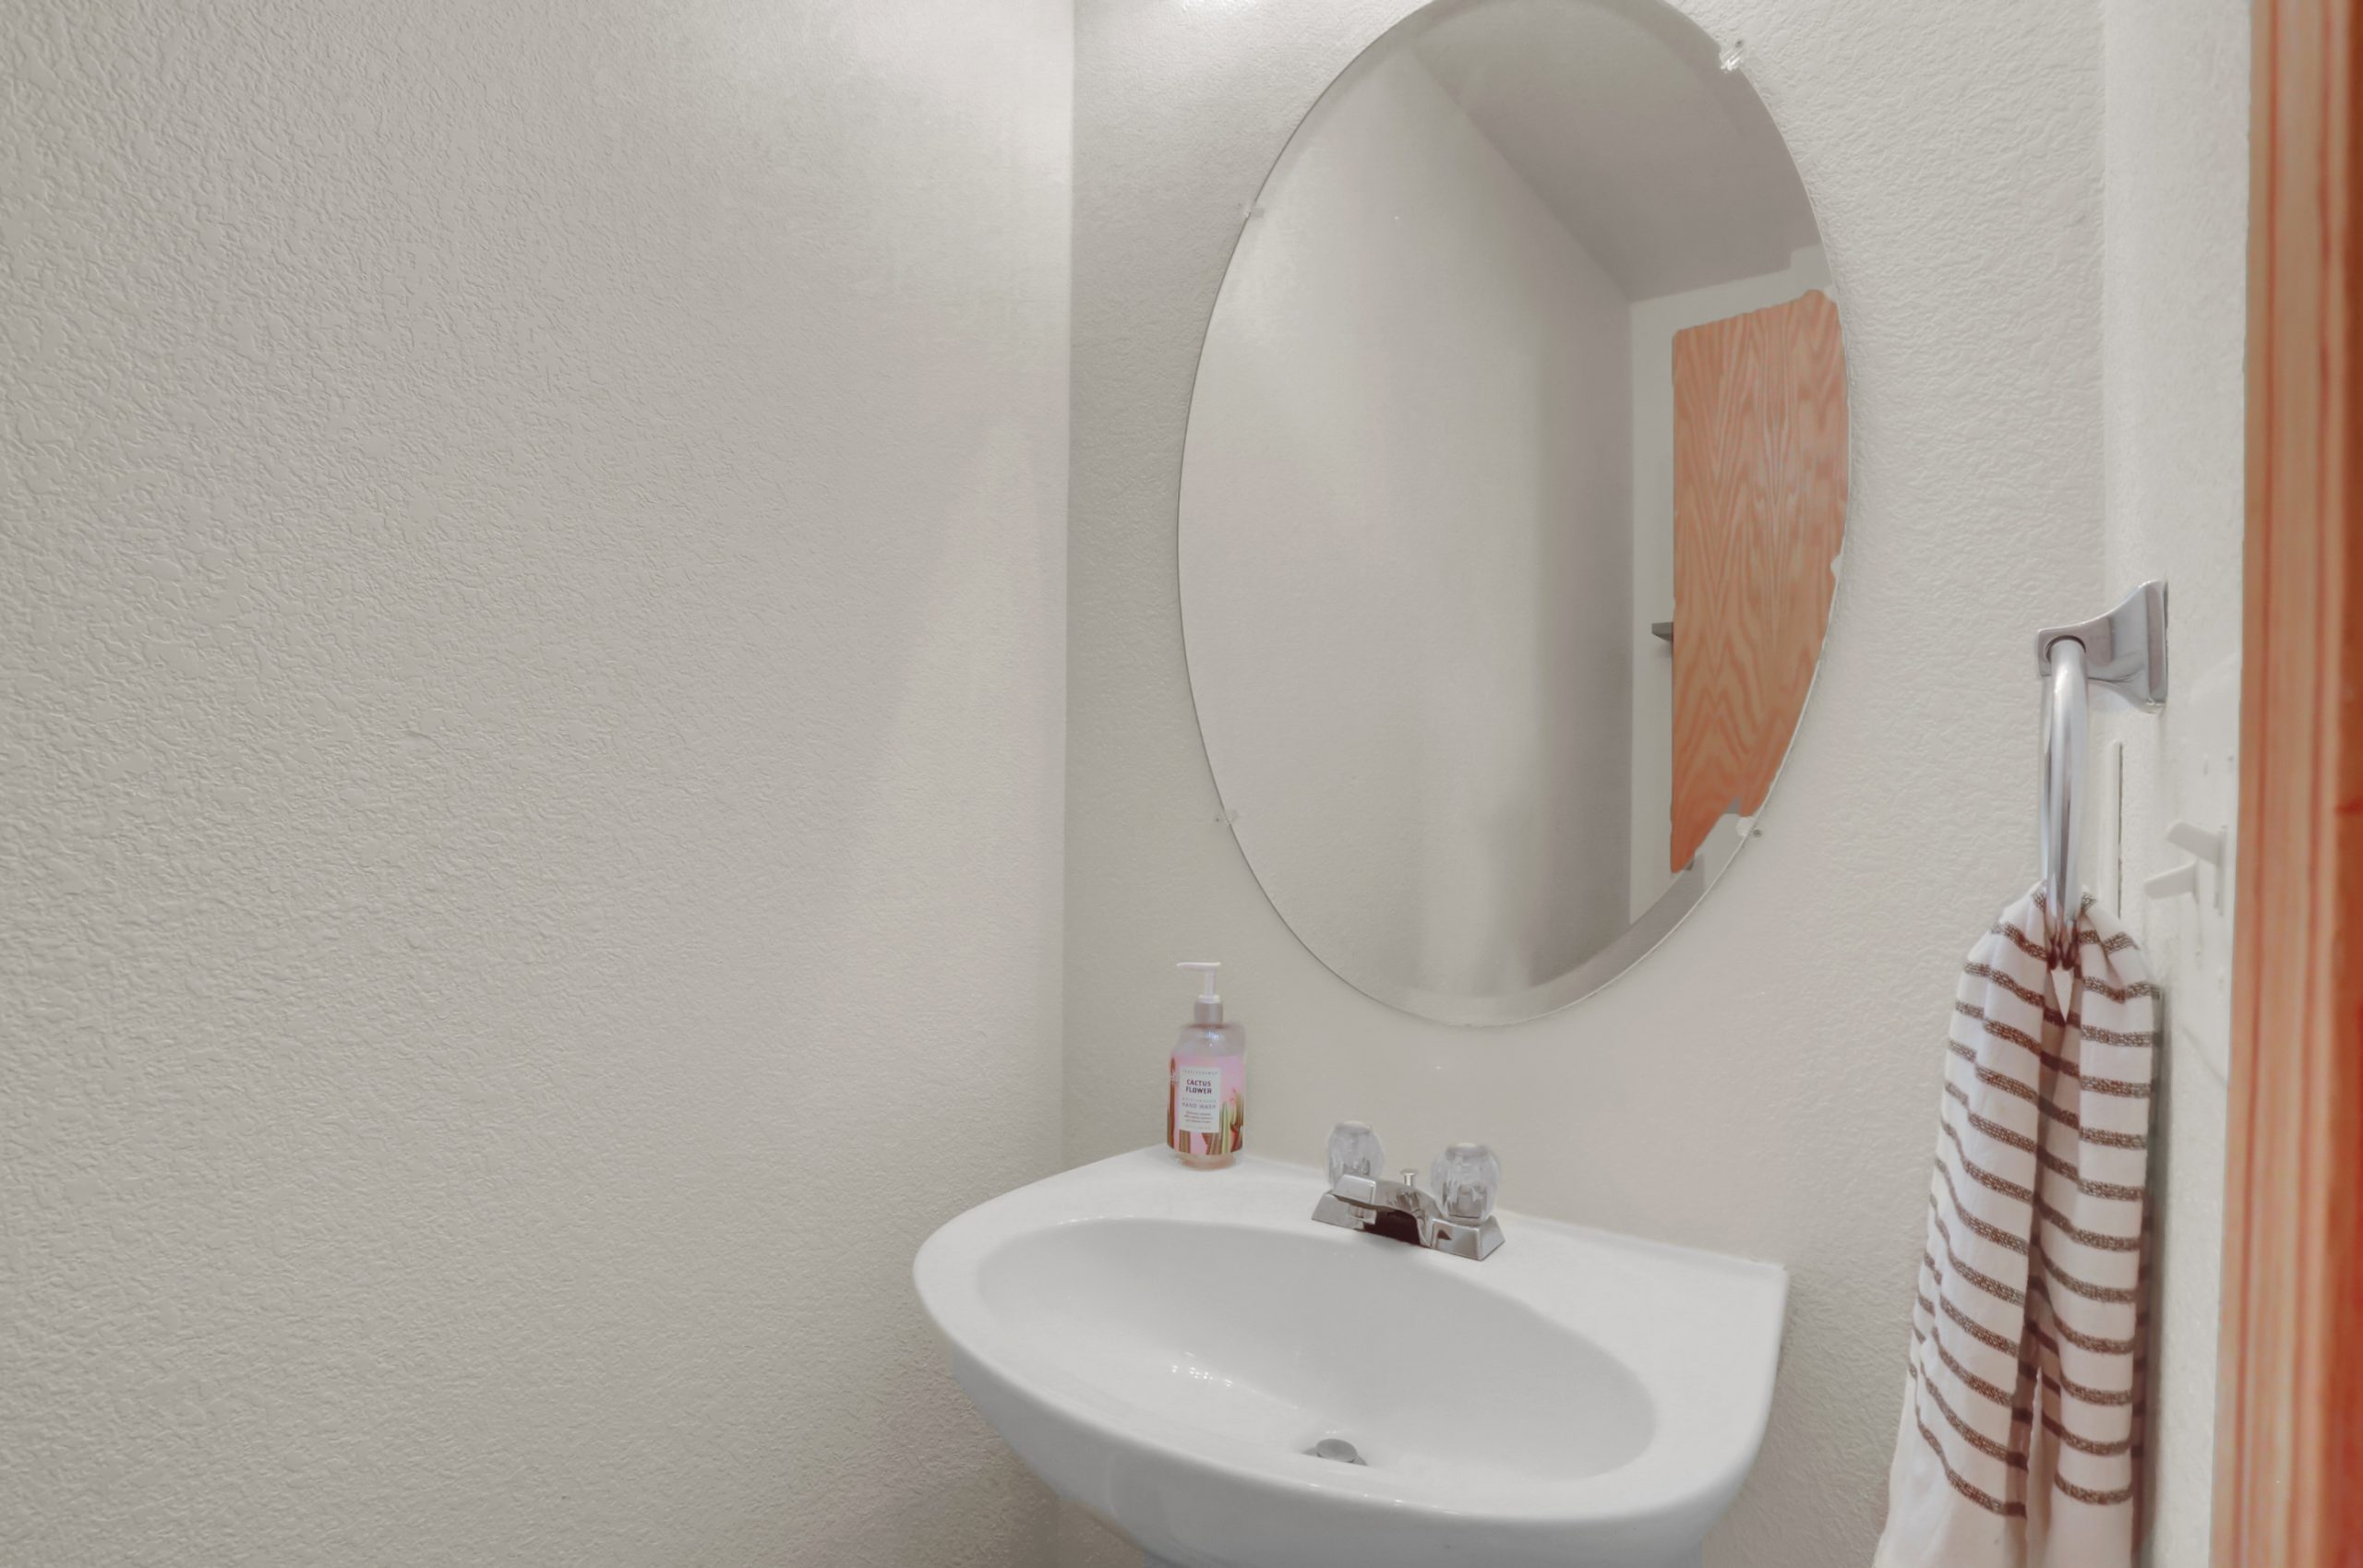 REAL ESTATE LISTING: 10502 Falcon St Firestone Powder Room